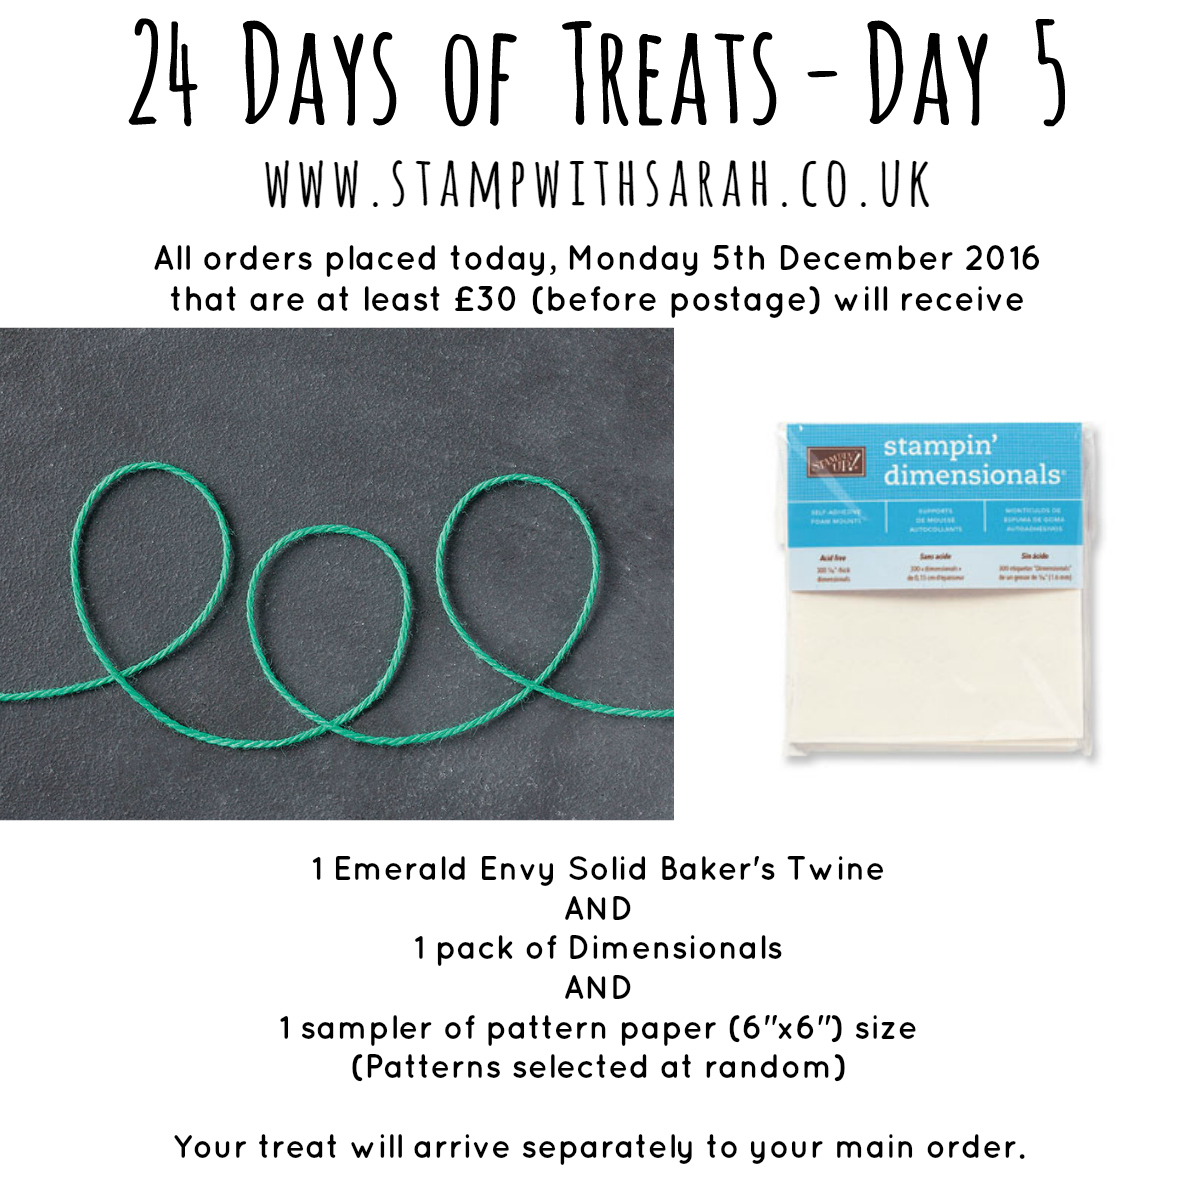 24-days-of-treats-day-5